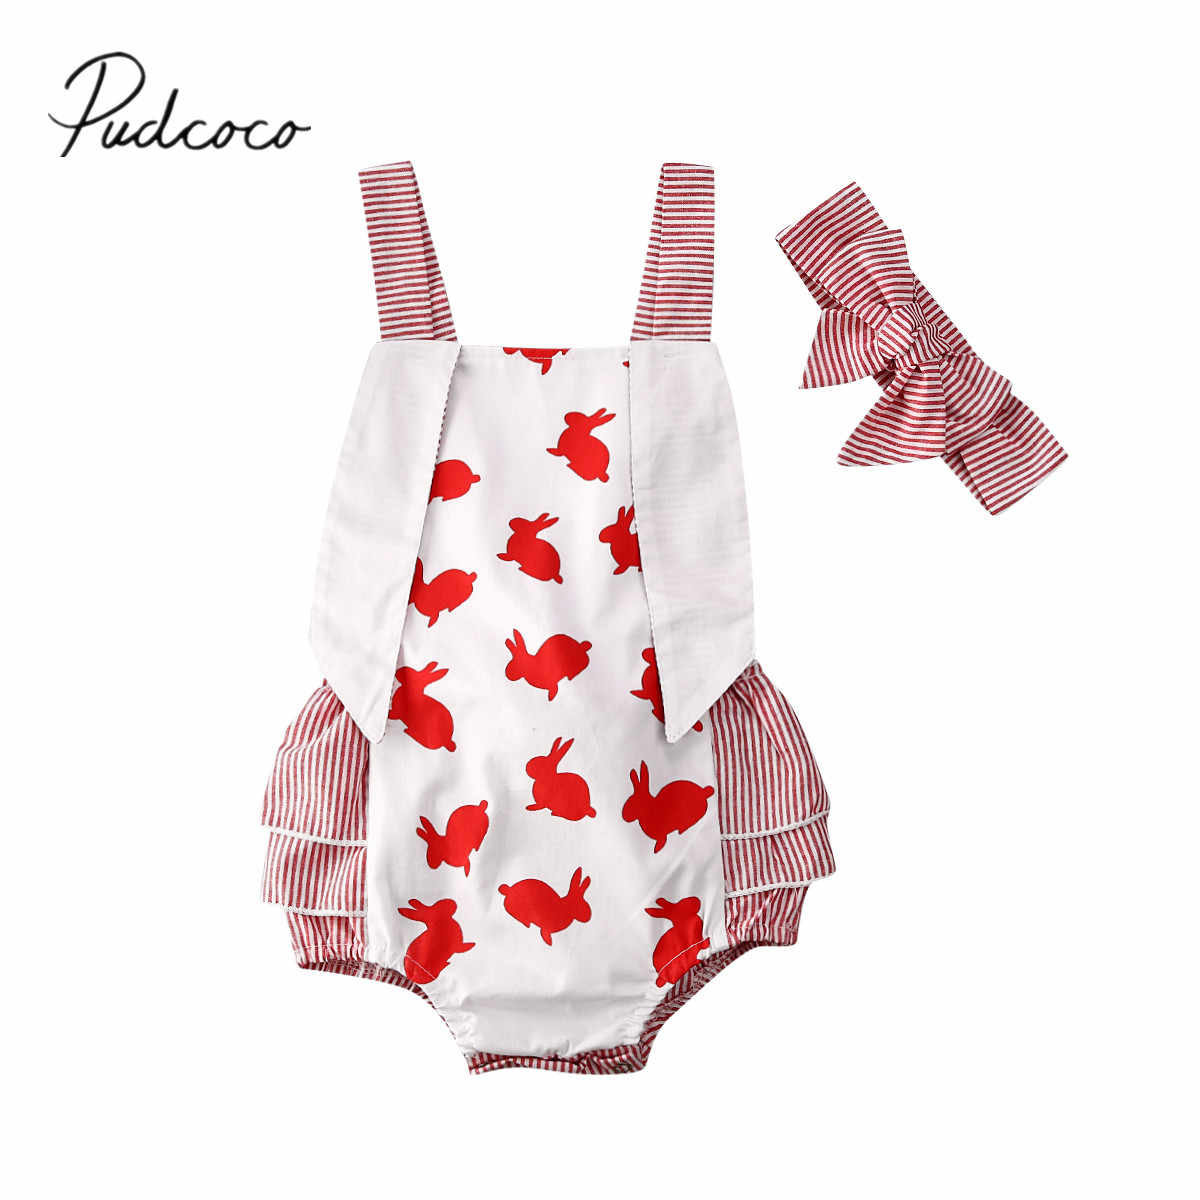 2020 Baby Summer Clothing Newborn Baby Girl Easter Bunny Long Ears Bodysuit Ruffled Striped Jumpsuit Headband Outfits 2PCS